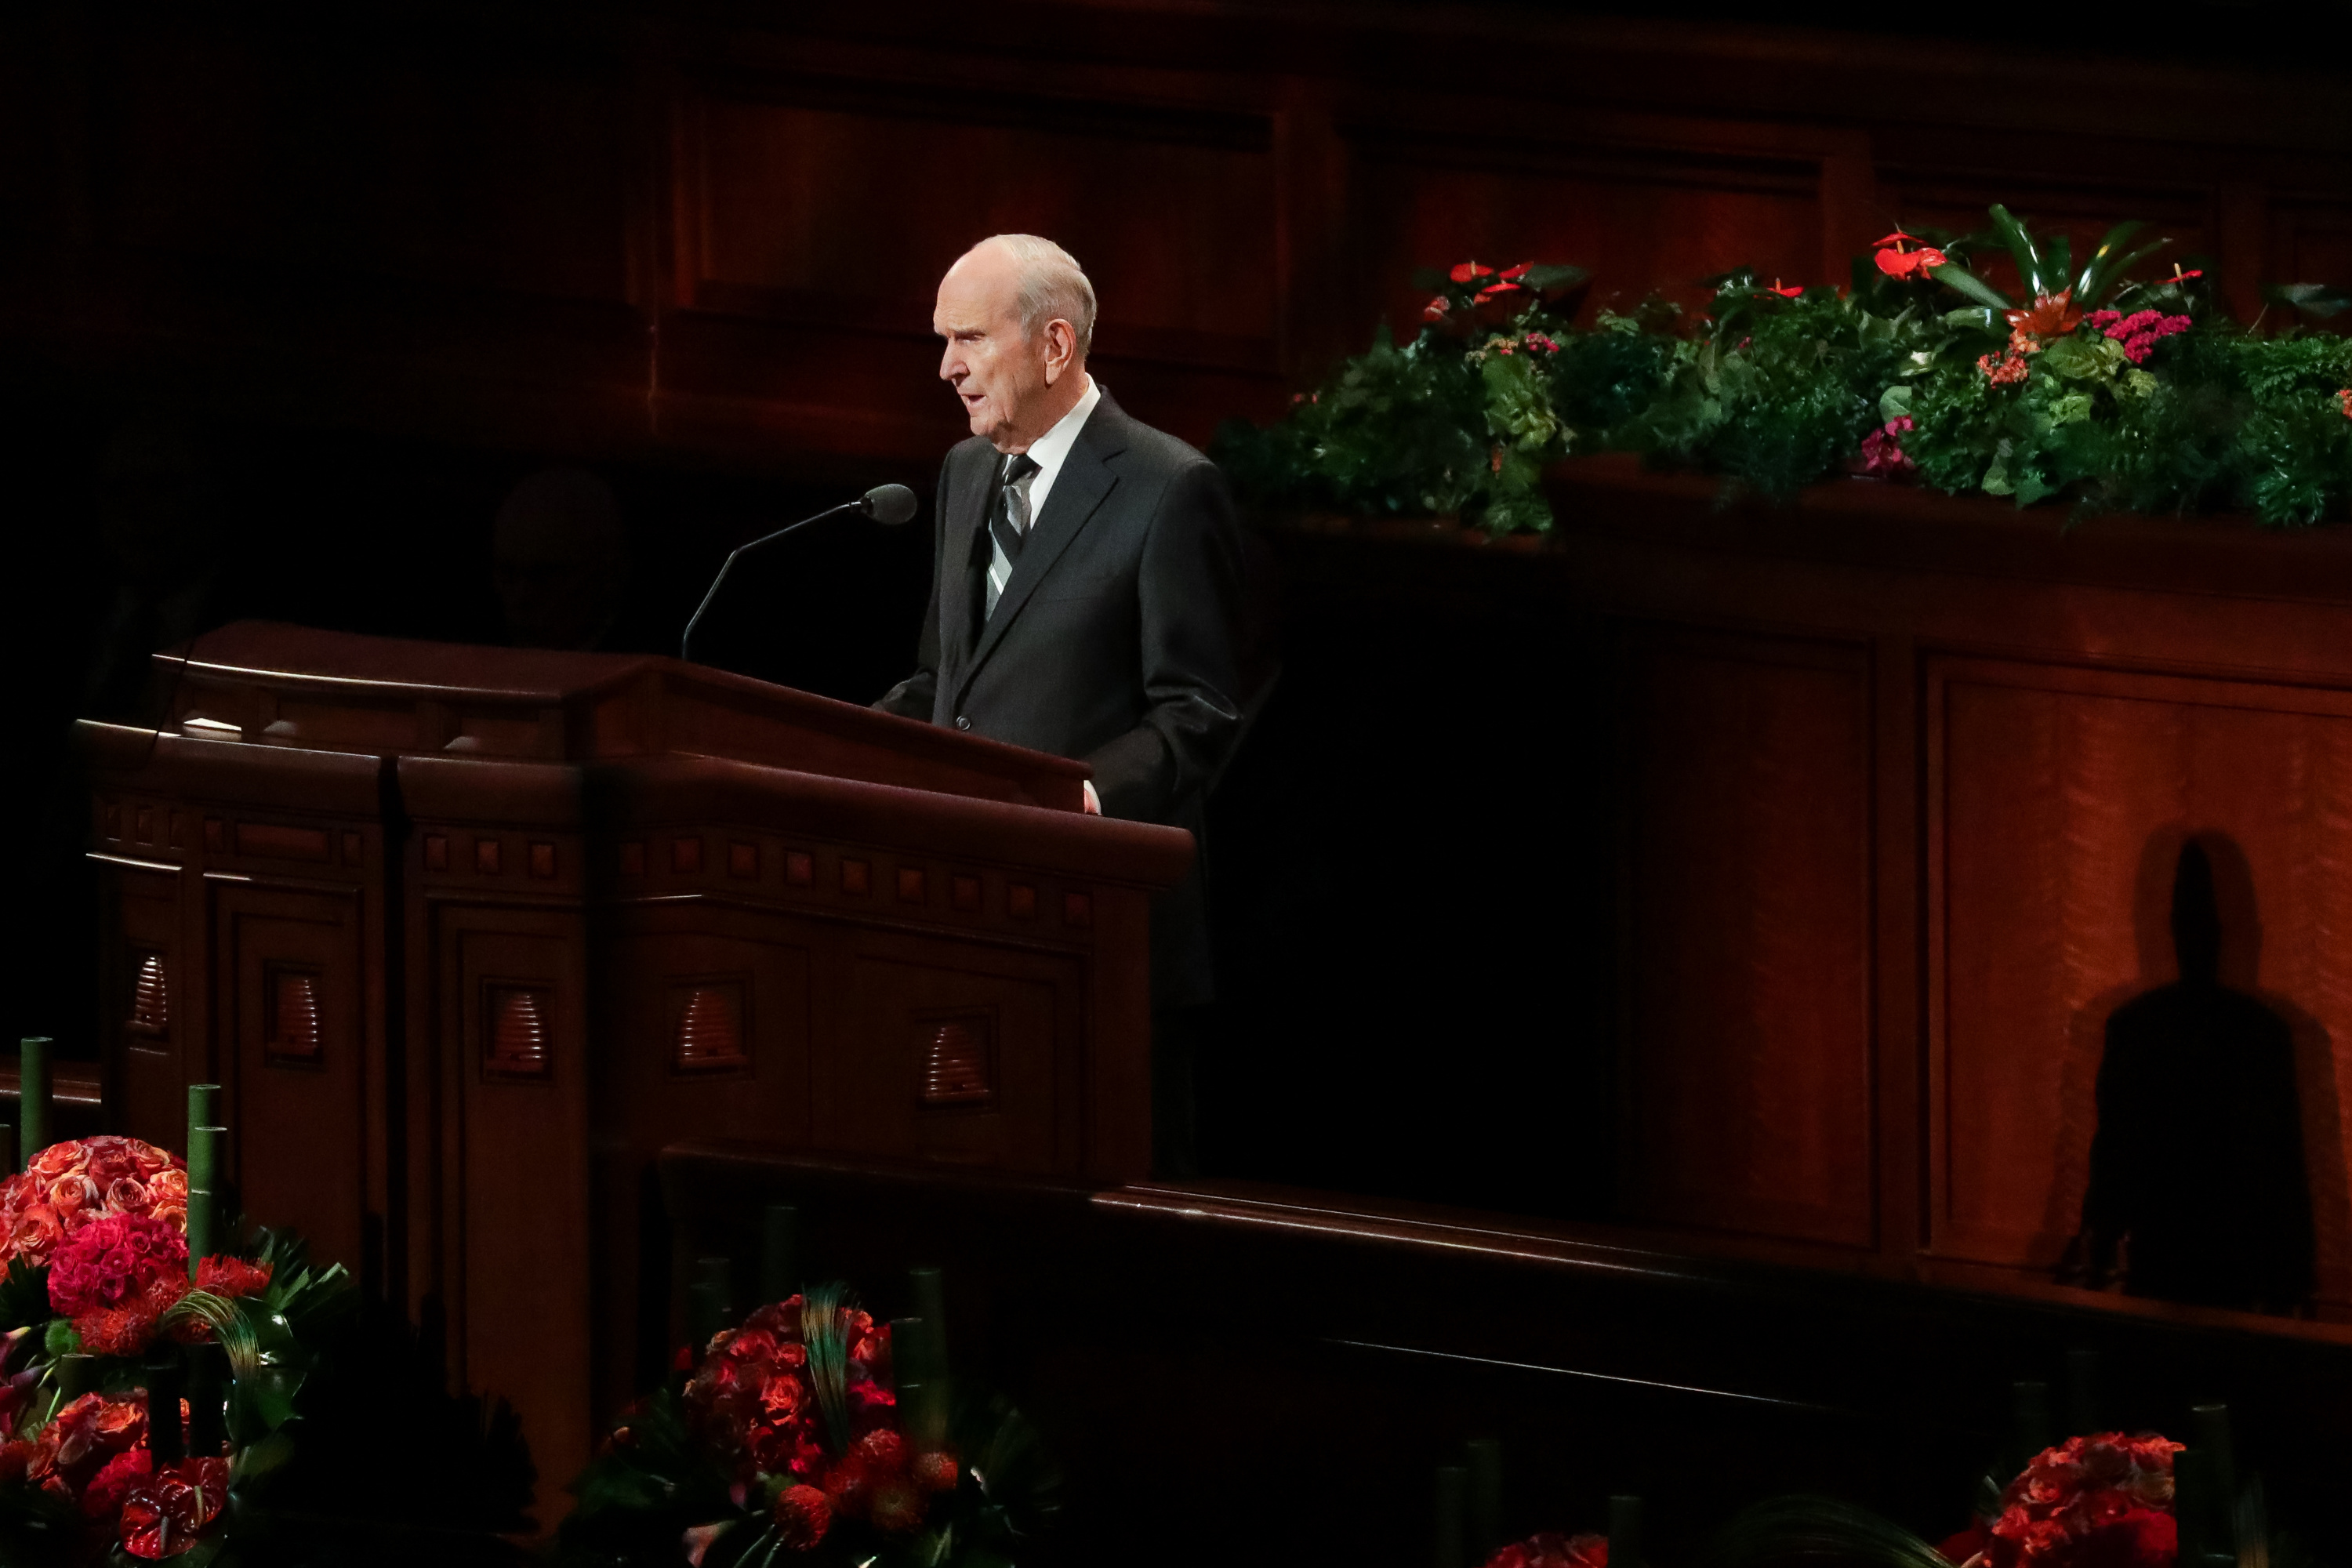 President Russell M. Nelson speaks during the Saturday morning session of the 188th Semiannual General Conference of The Church of Jesus Christ of Latter-day Saints in the Conference Center in Salt Lake City on Saturday, Oct. 6, 2018.